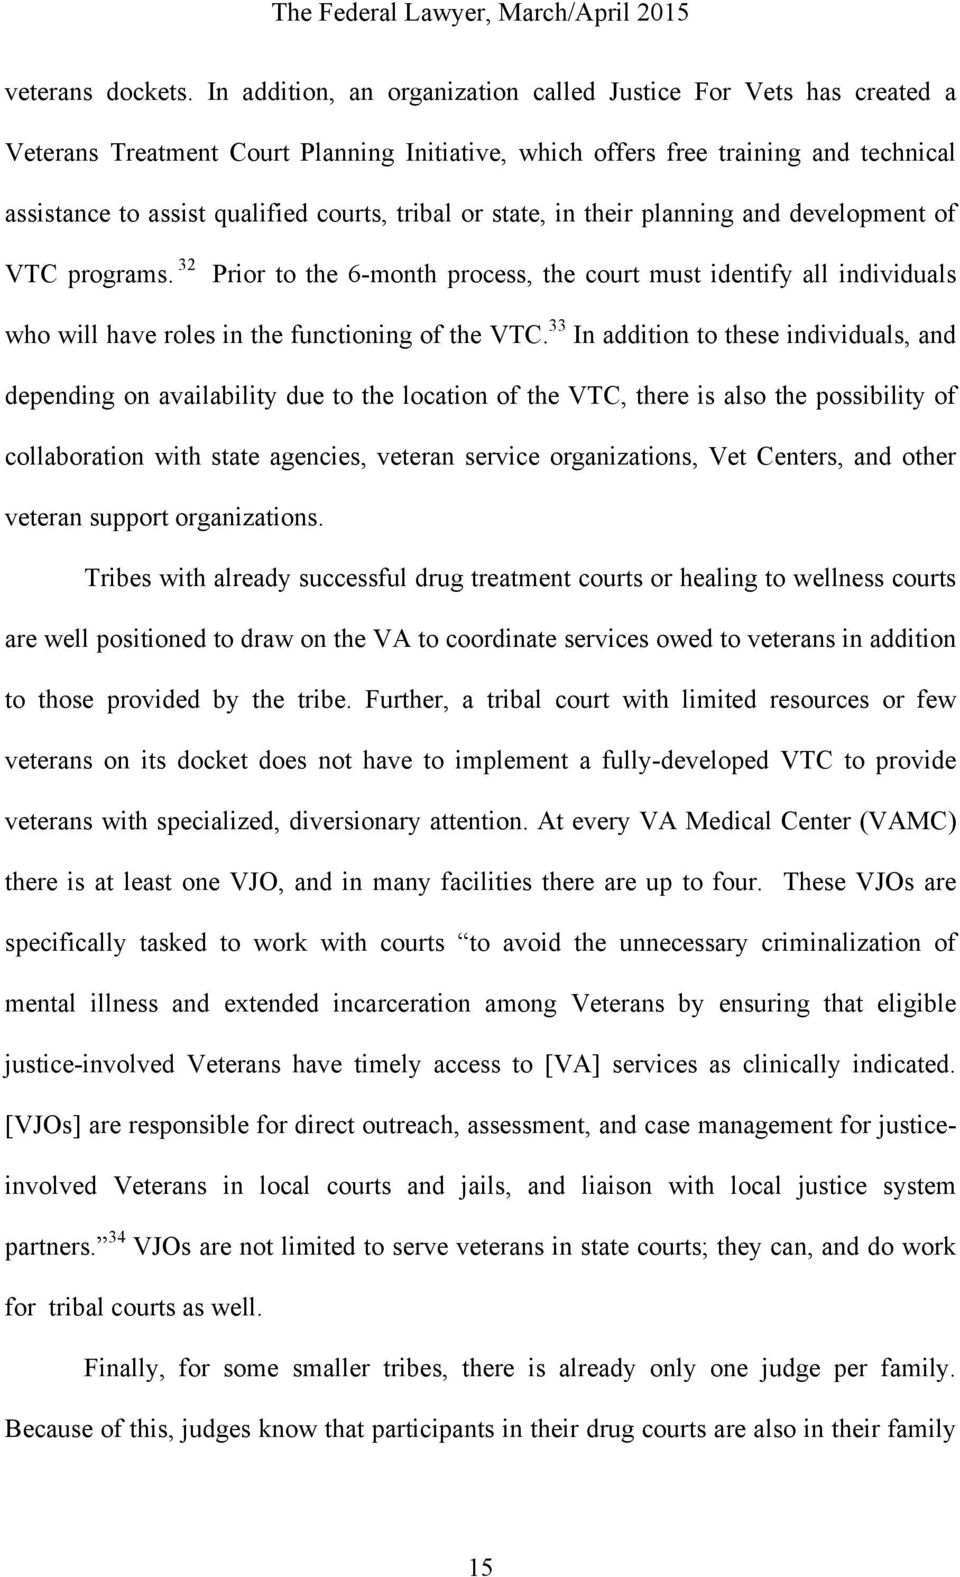 or state, in their planning and development of VTC programs. 32 Prior to the 6-month process, the court must identify all individuals who will have roles in the functioning of the VTC.